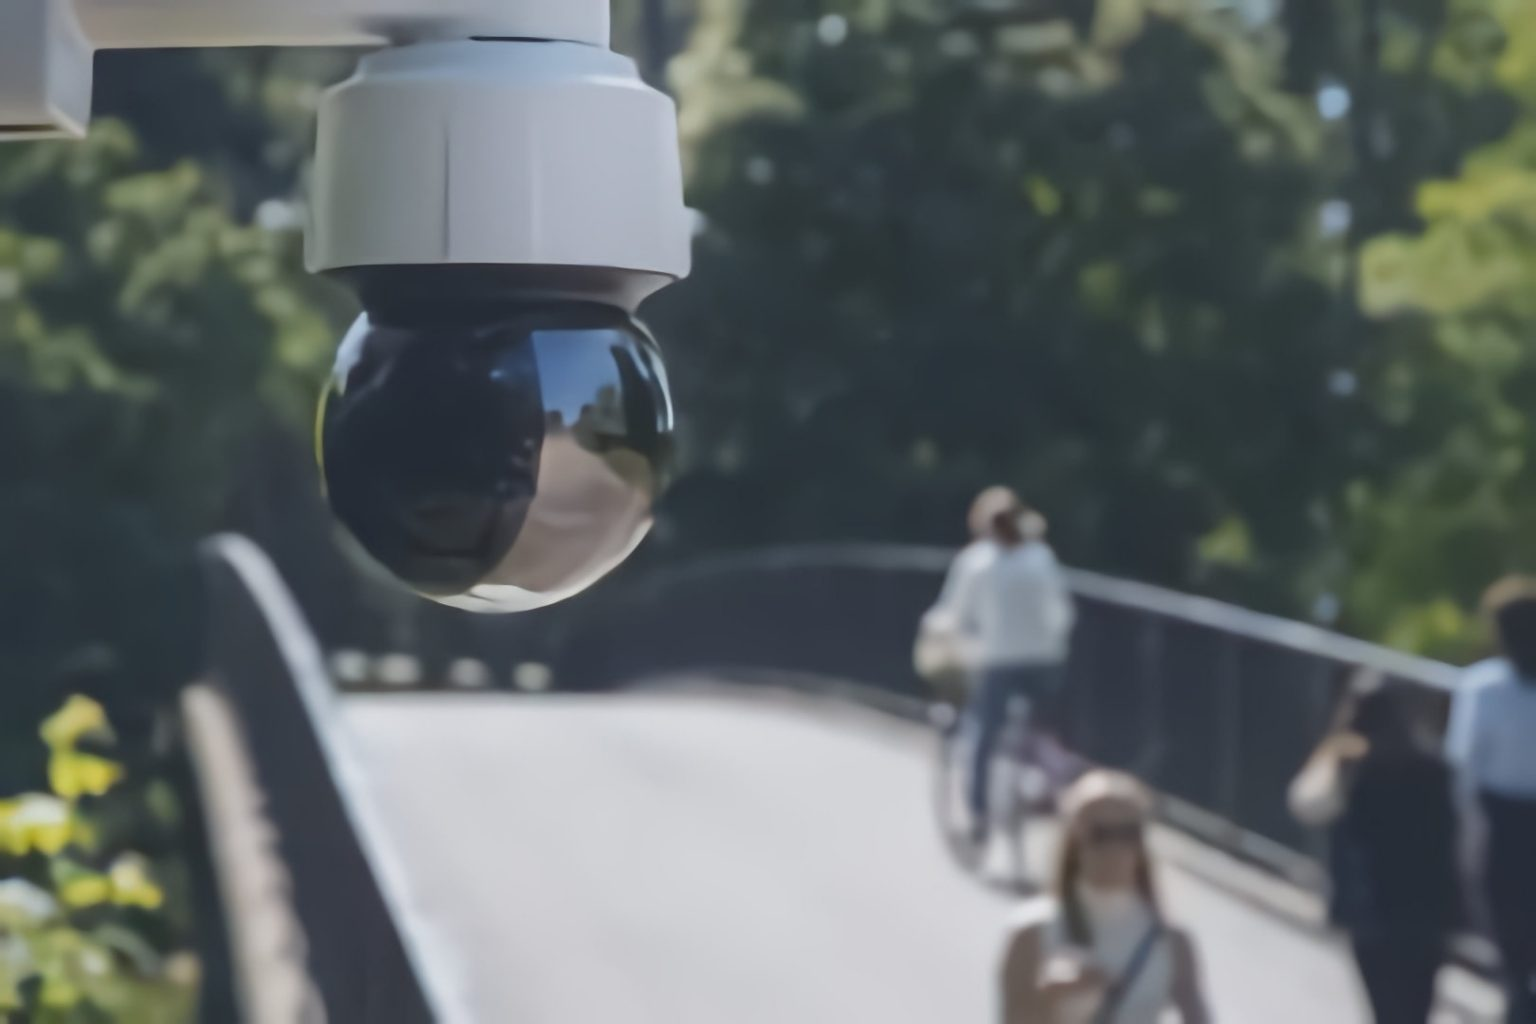 microngroup axis network camera installed in a park